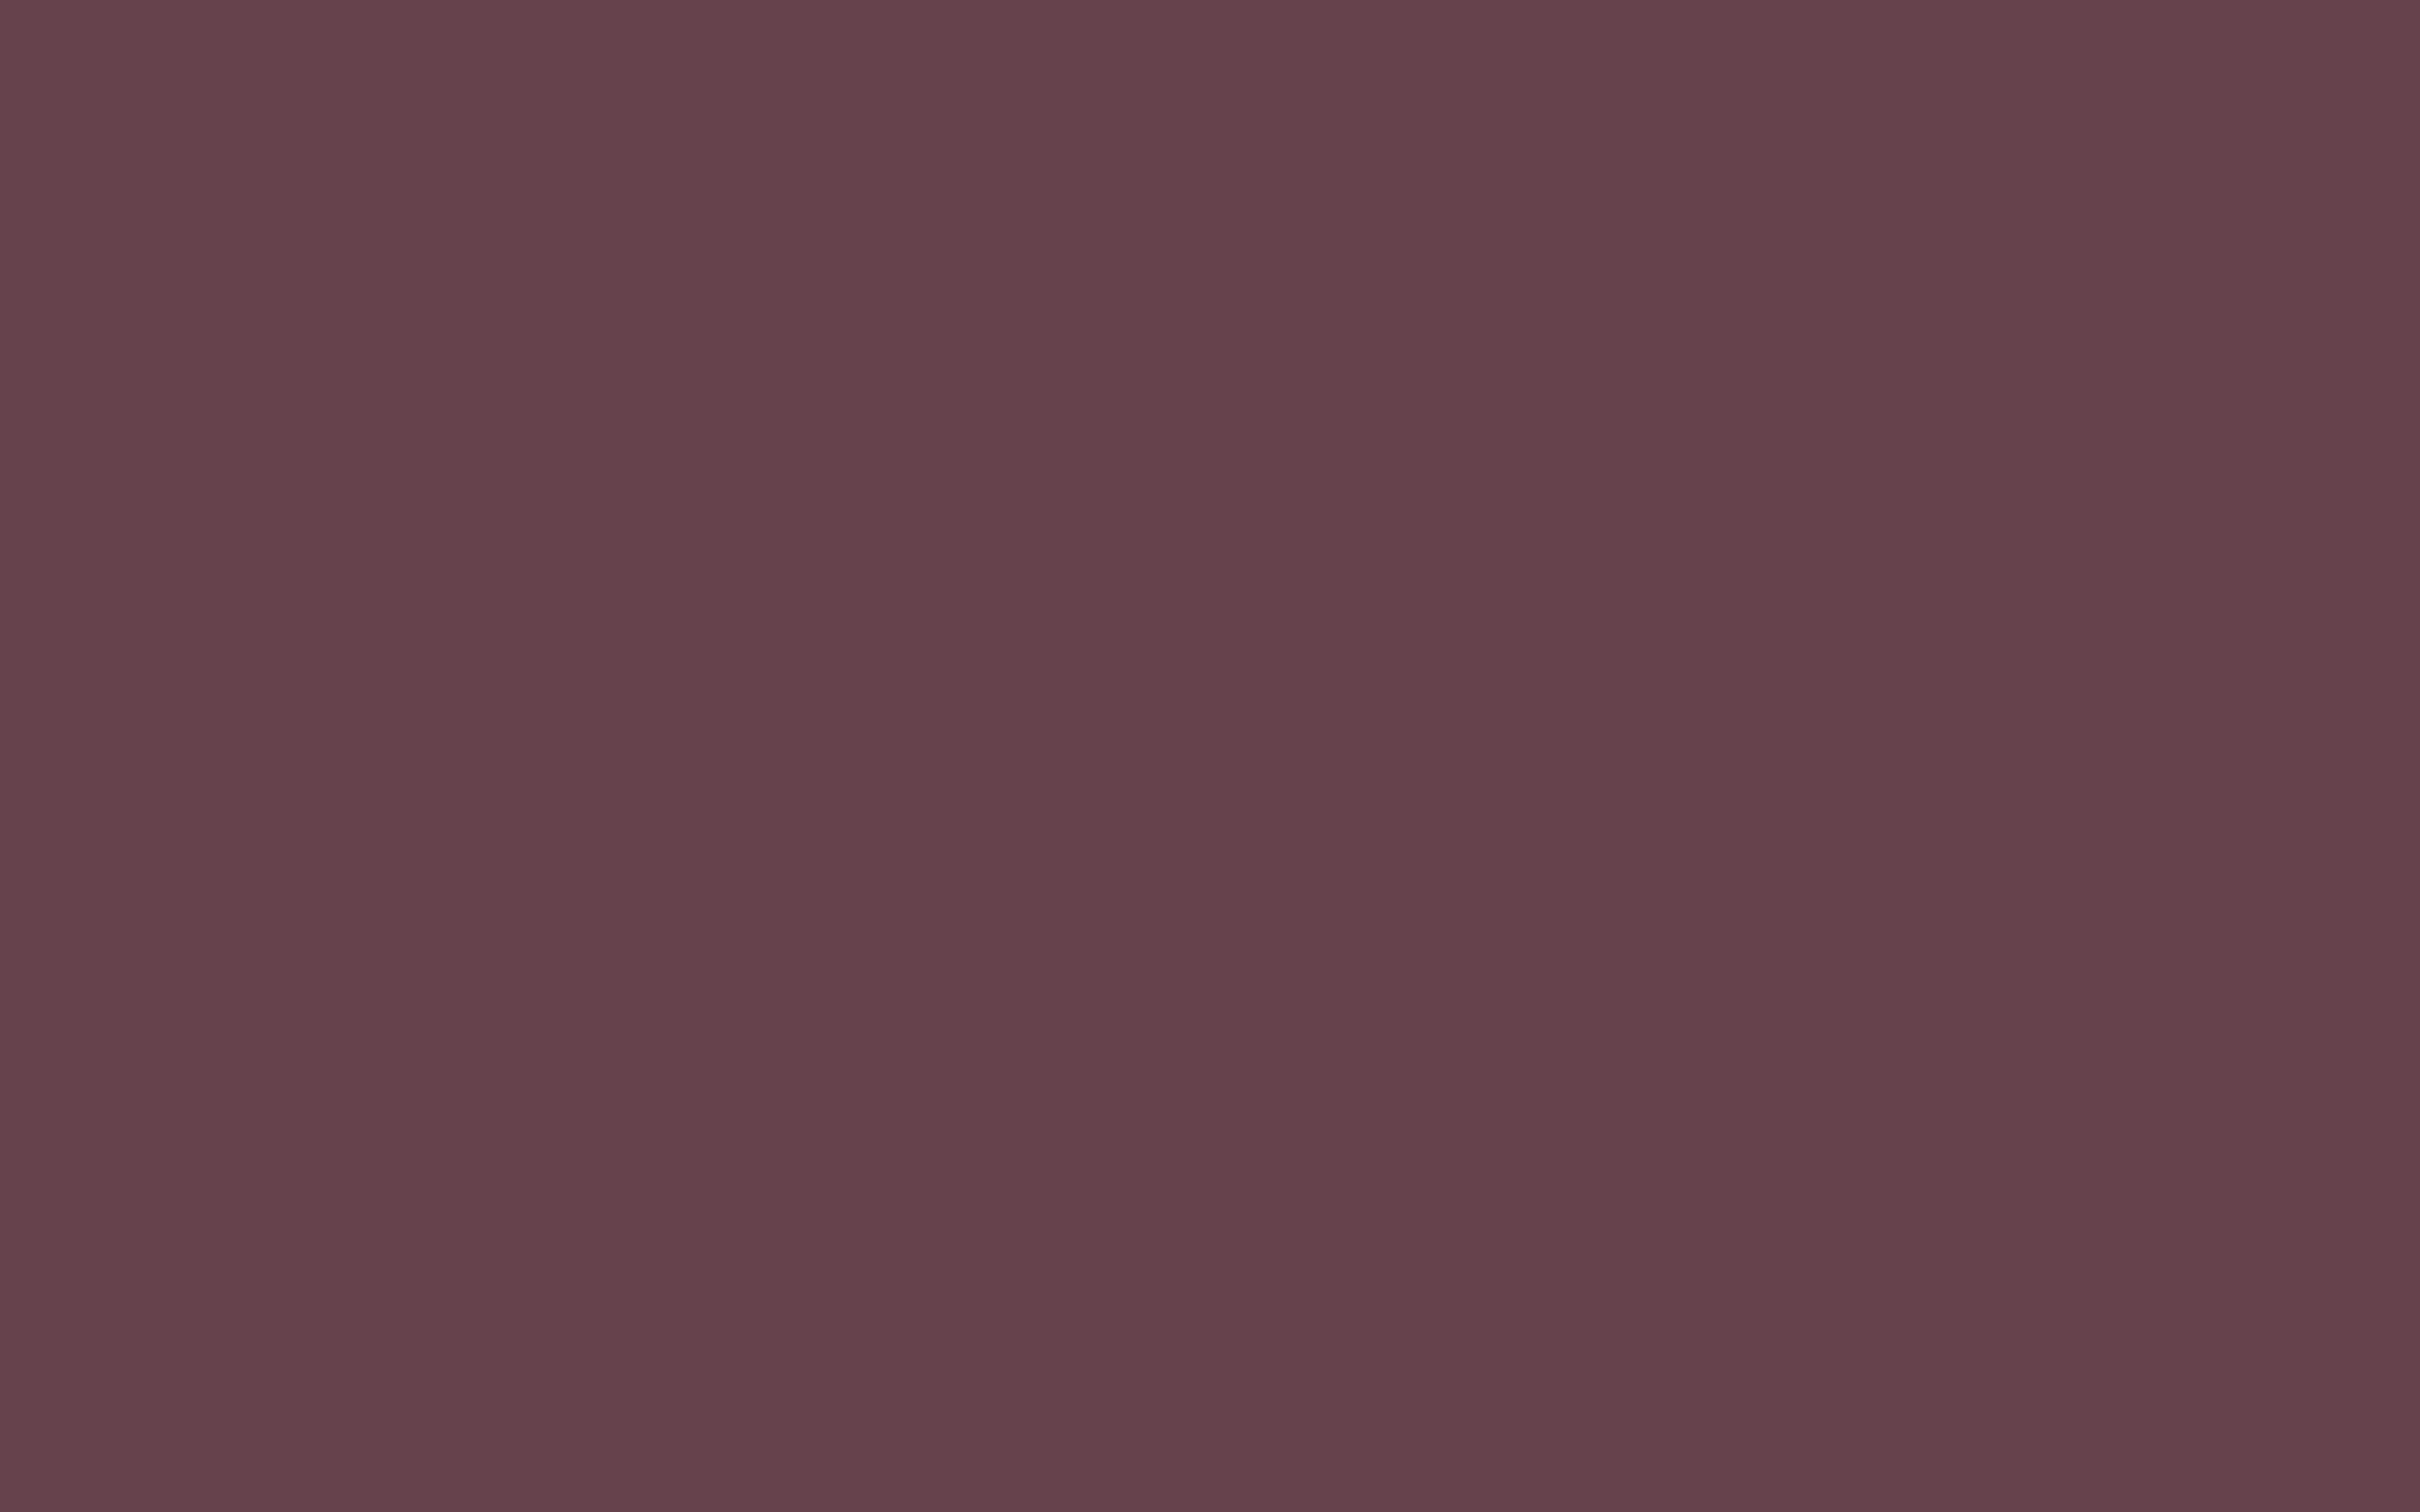 2880x1800 Deep Tuscan Red Solid Color Background